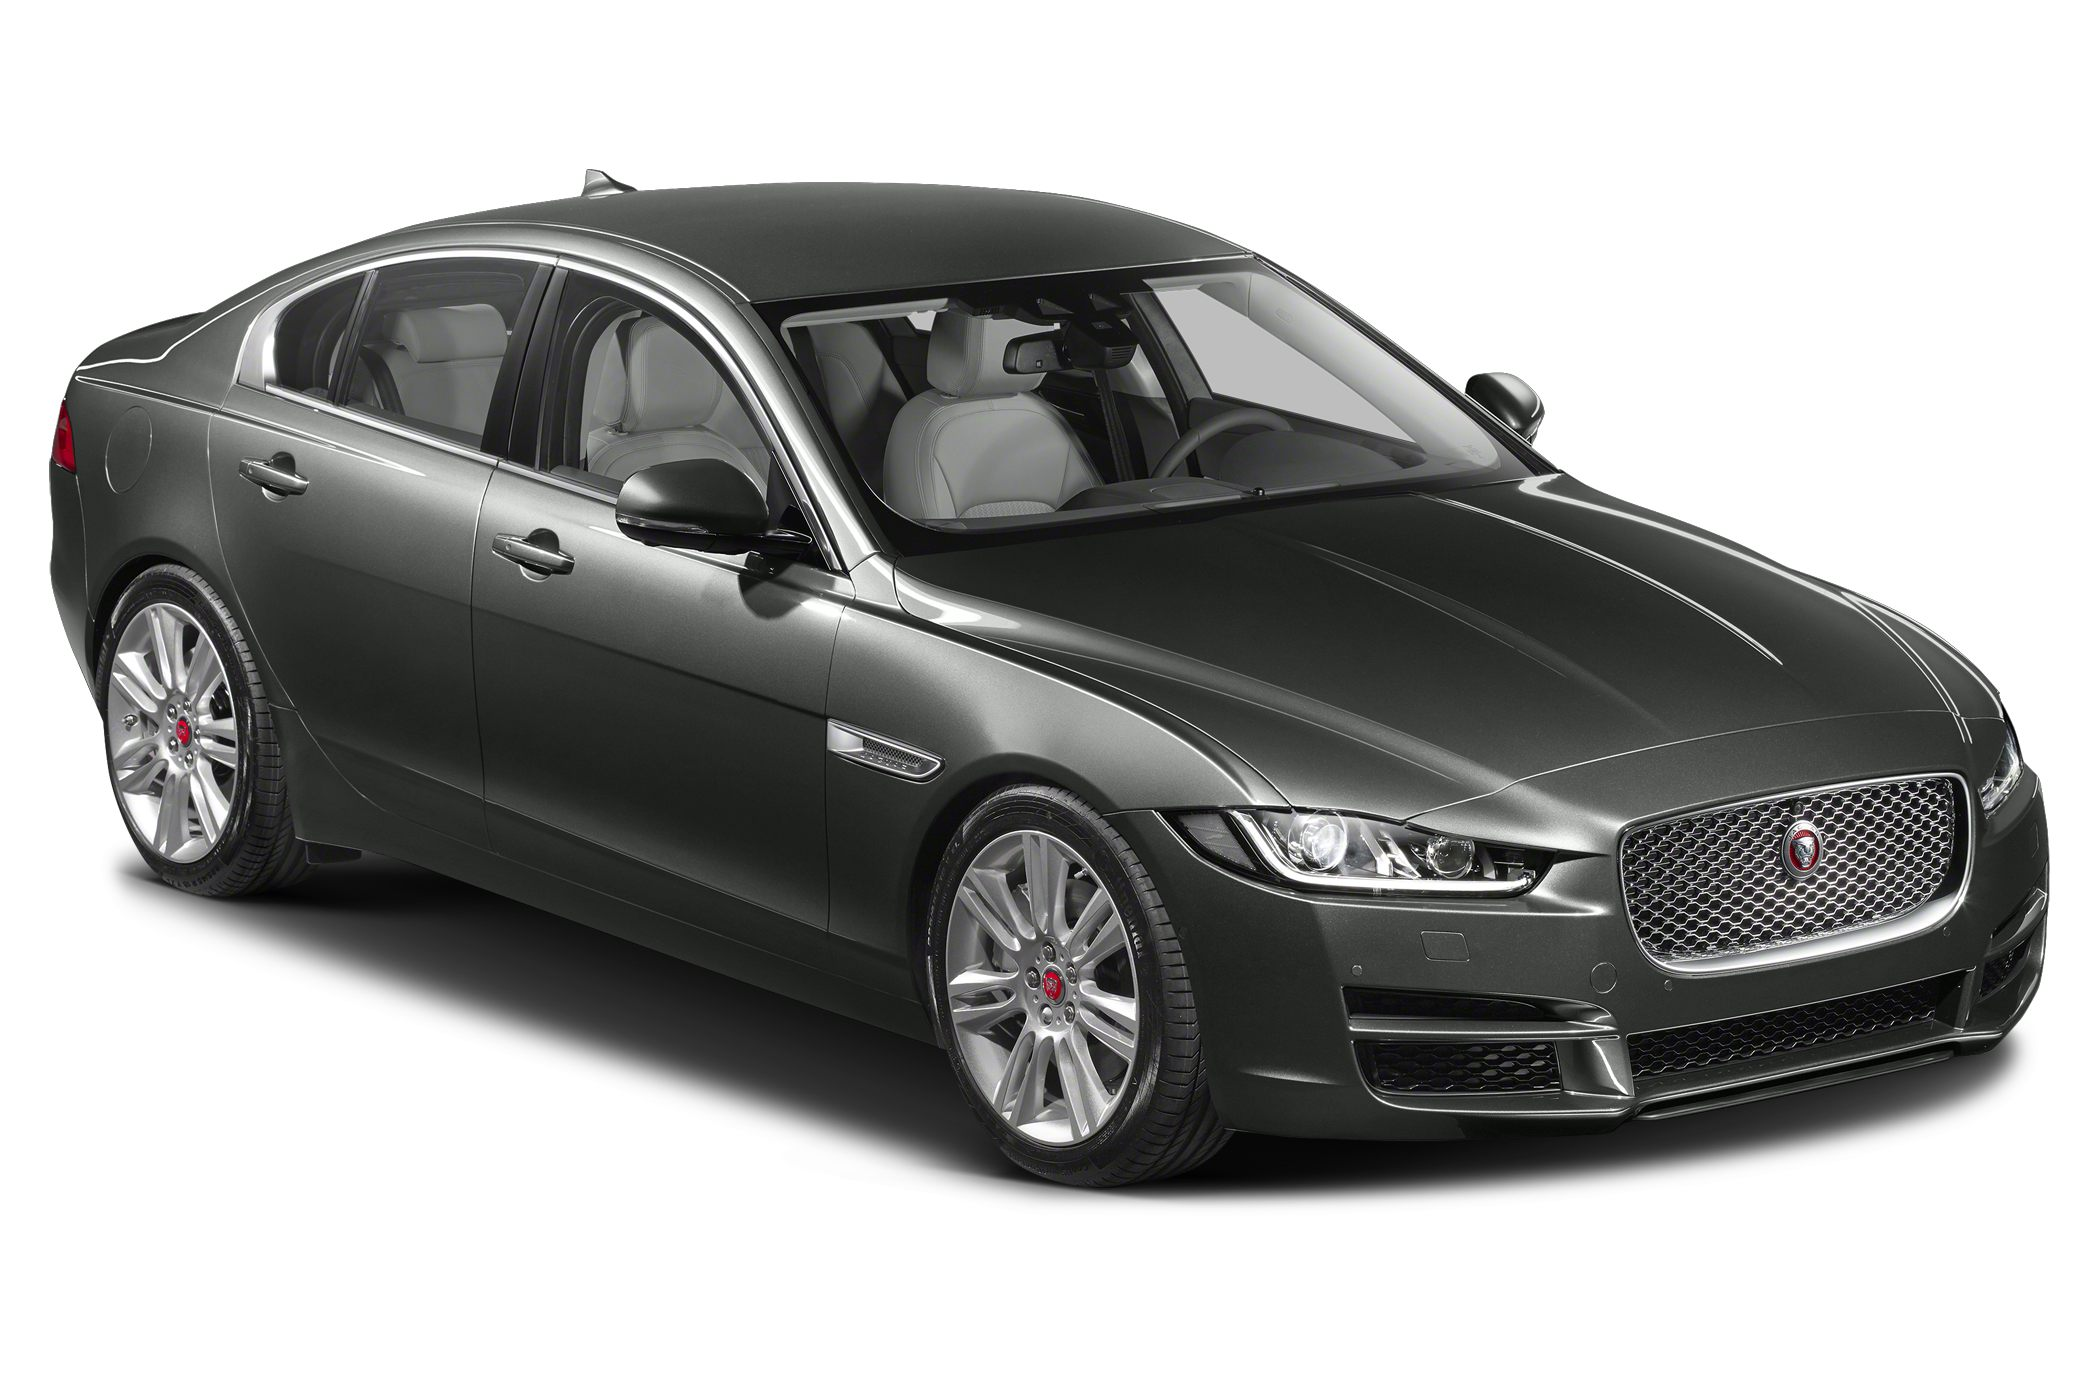 2017 Jaguar F Pace 35T R Sport >> US-spec 2017 Jaguar XE sport sedan revealed - Autoblog